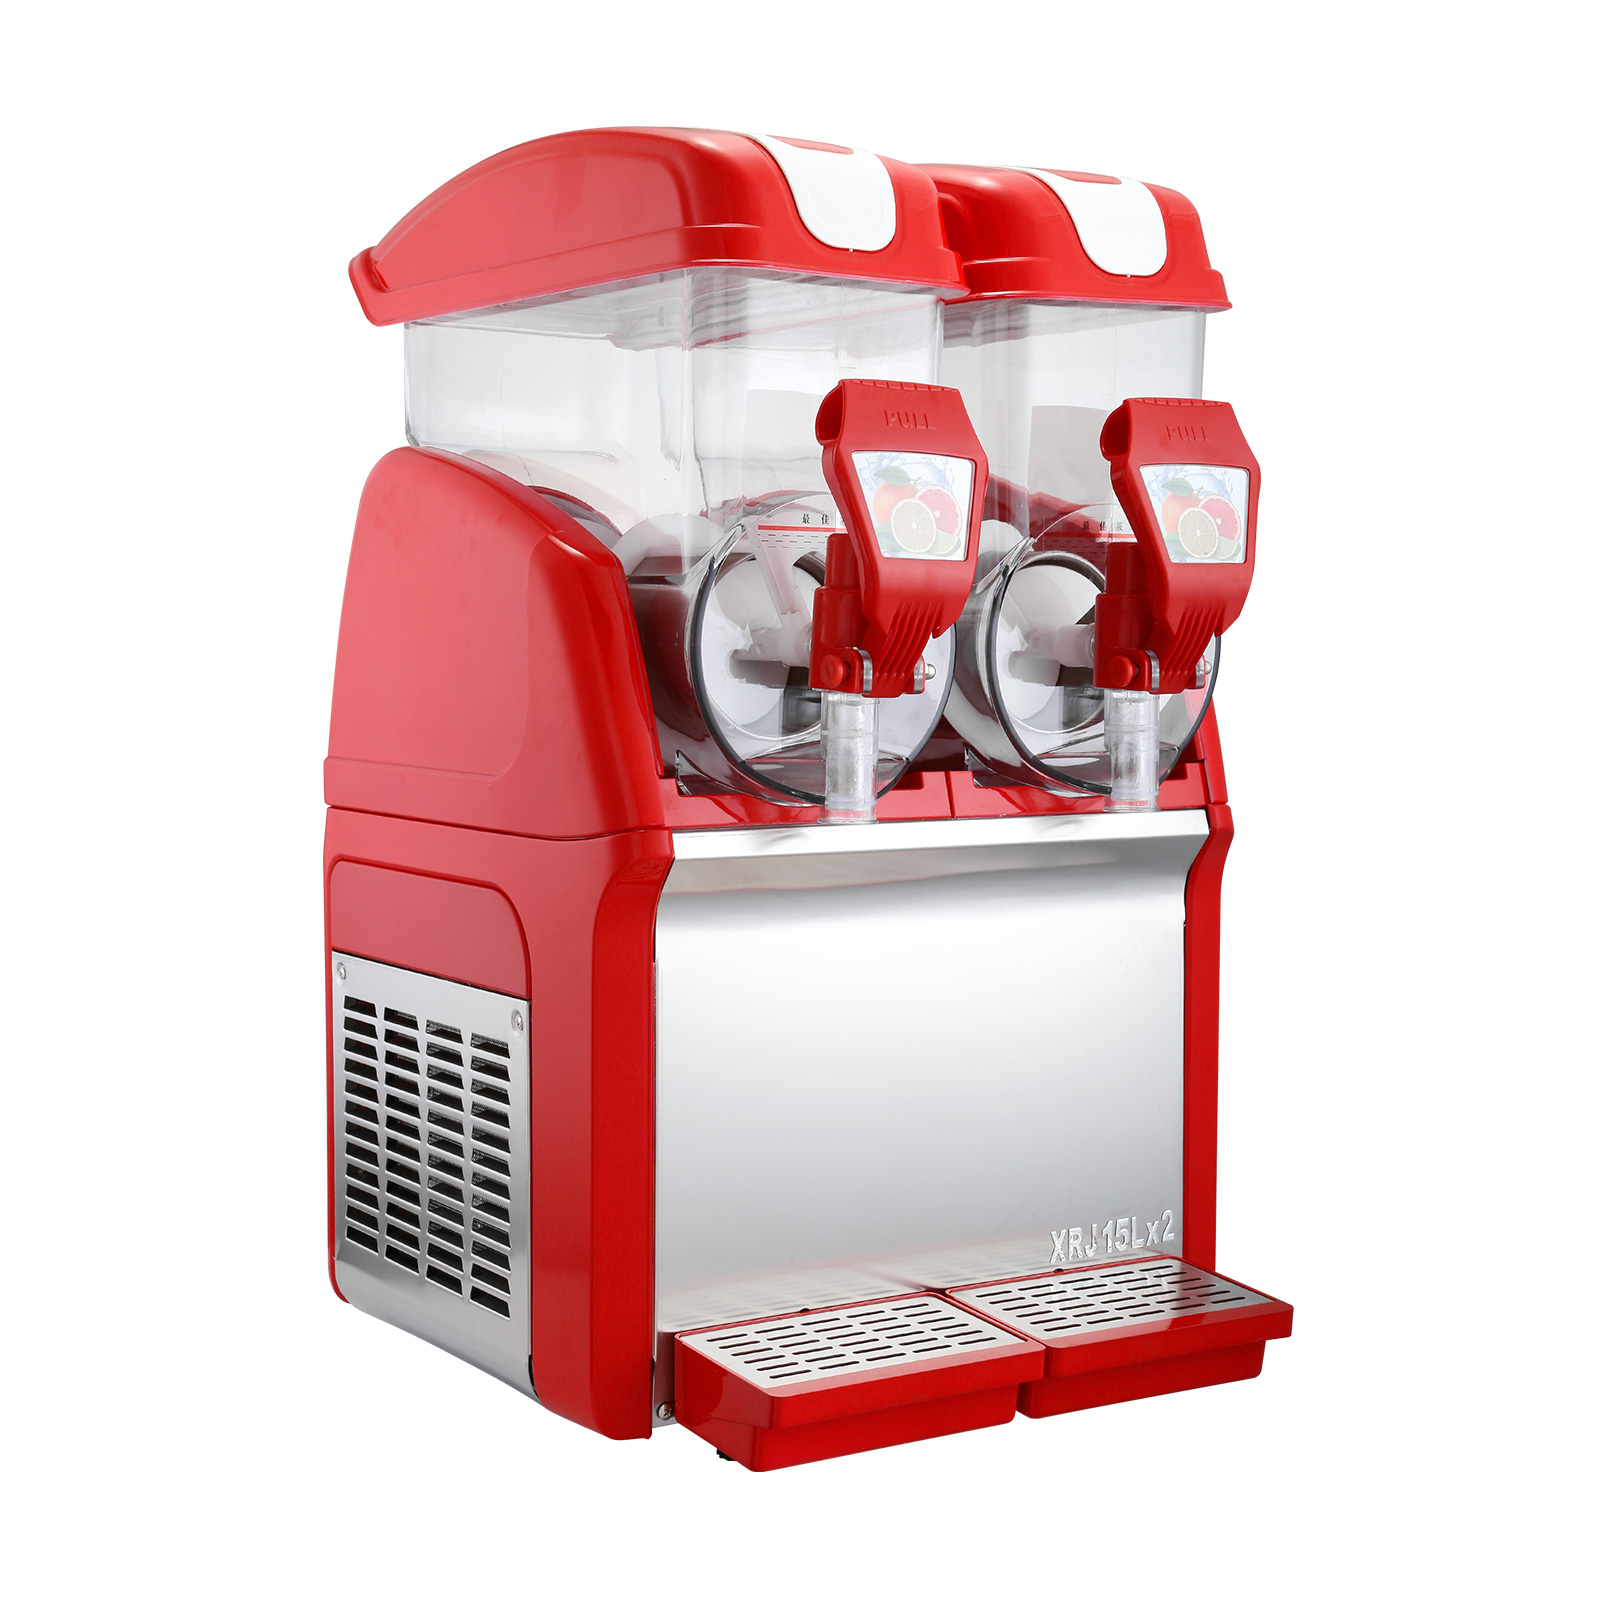 VEVOR Slush Slushy Making Machine 15L X 2 Tanks Red Frozen Drink Slush Machine Commercial Smoothie Maker with Spigot